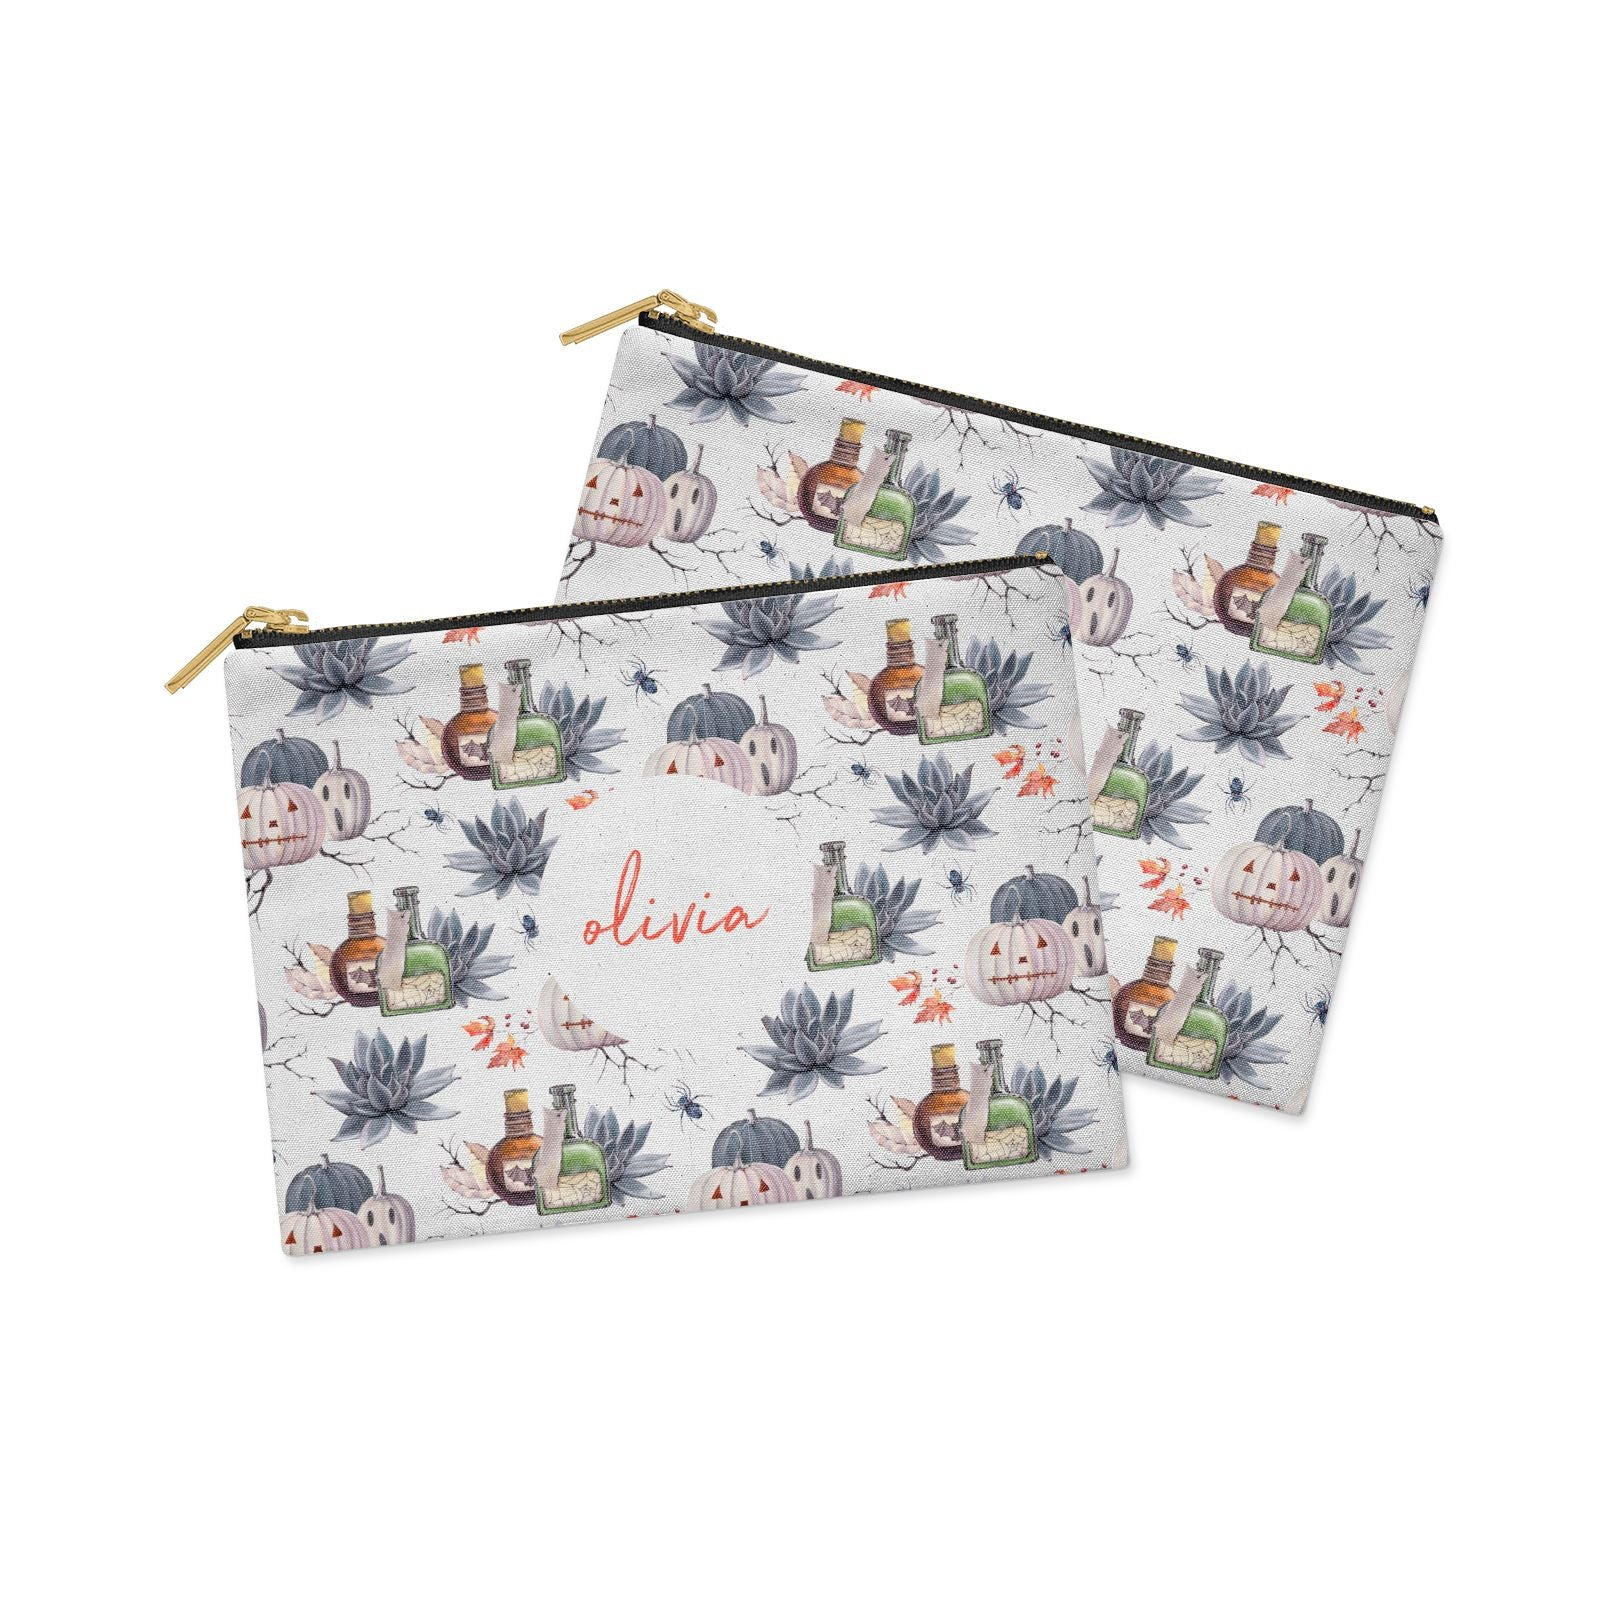 Personalised Floral Name Halloween Clutch Bag Zipper Pouch Alternative View